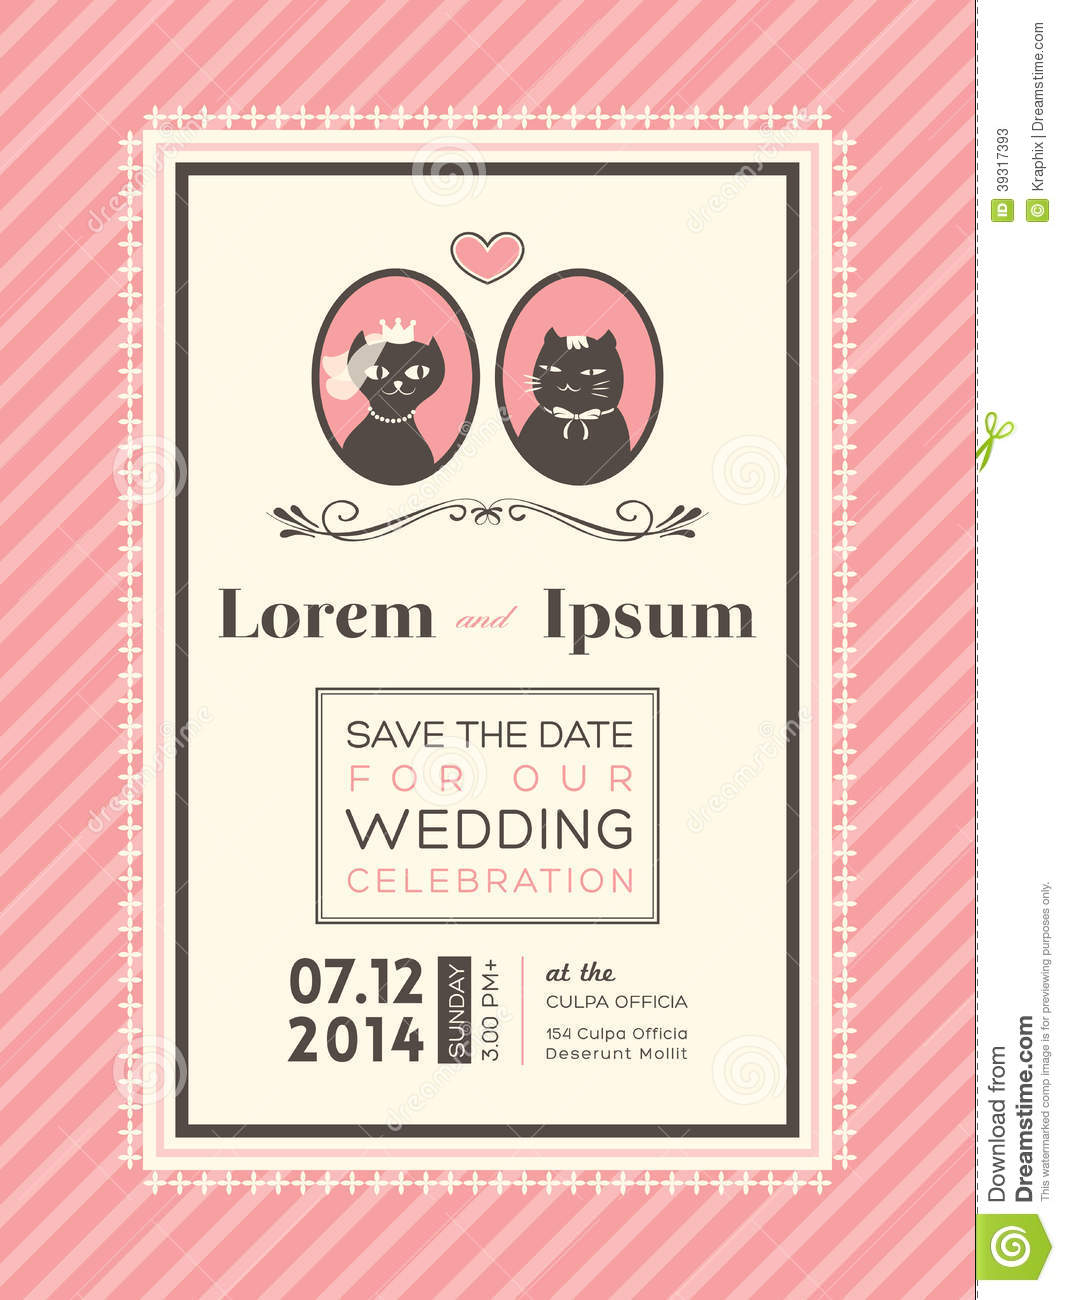 Cute Wedding Invitation Frame Template Stock Vector Illustration - Cute wedding invitation templates